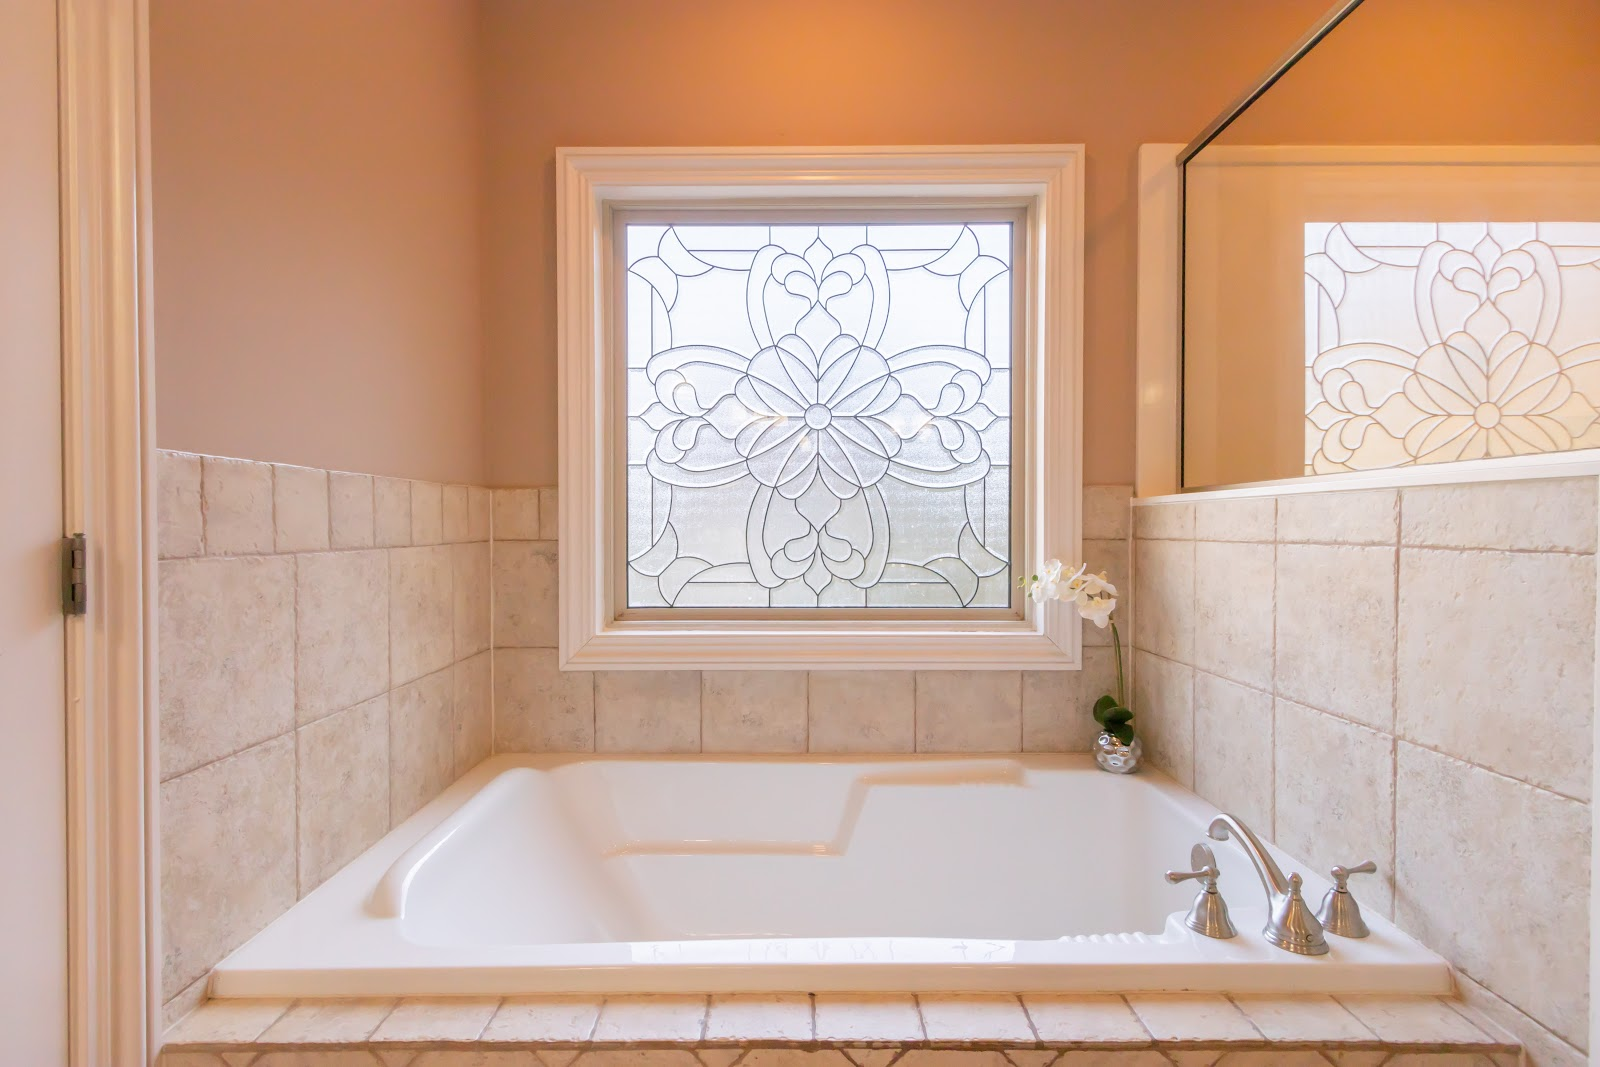 Don't block any of the windows when staging your master bathroom. Let the natural light in!